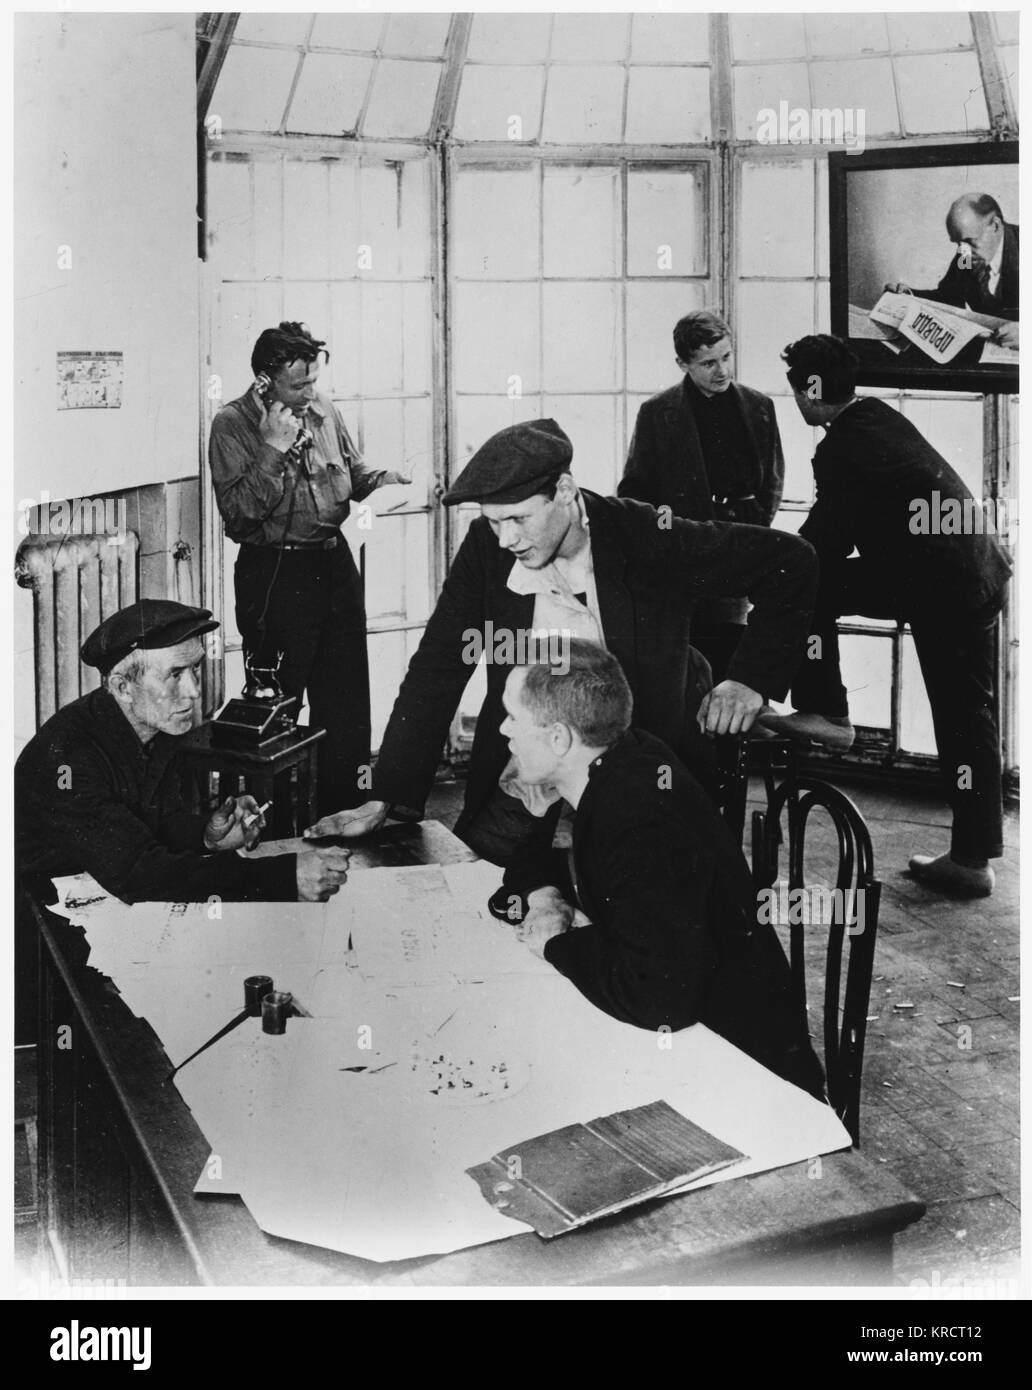 A meeting of the workers' committee in a Moscow factory (N Filipovva on far left) Date: 1931 - Stock Image